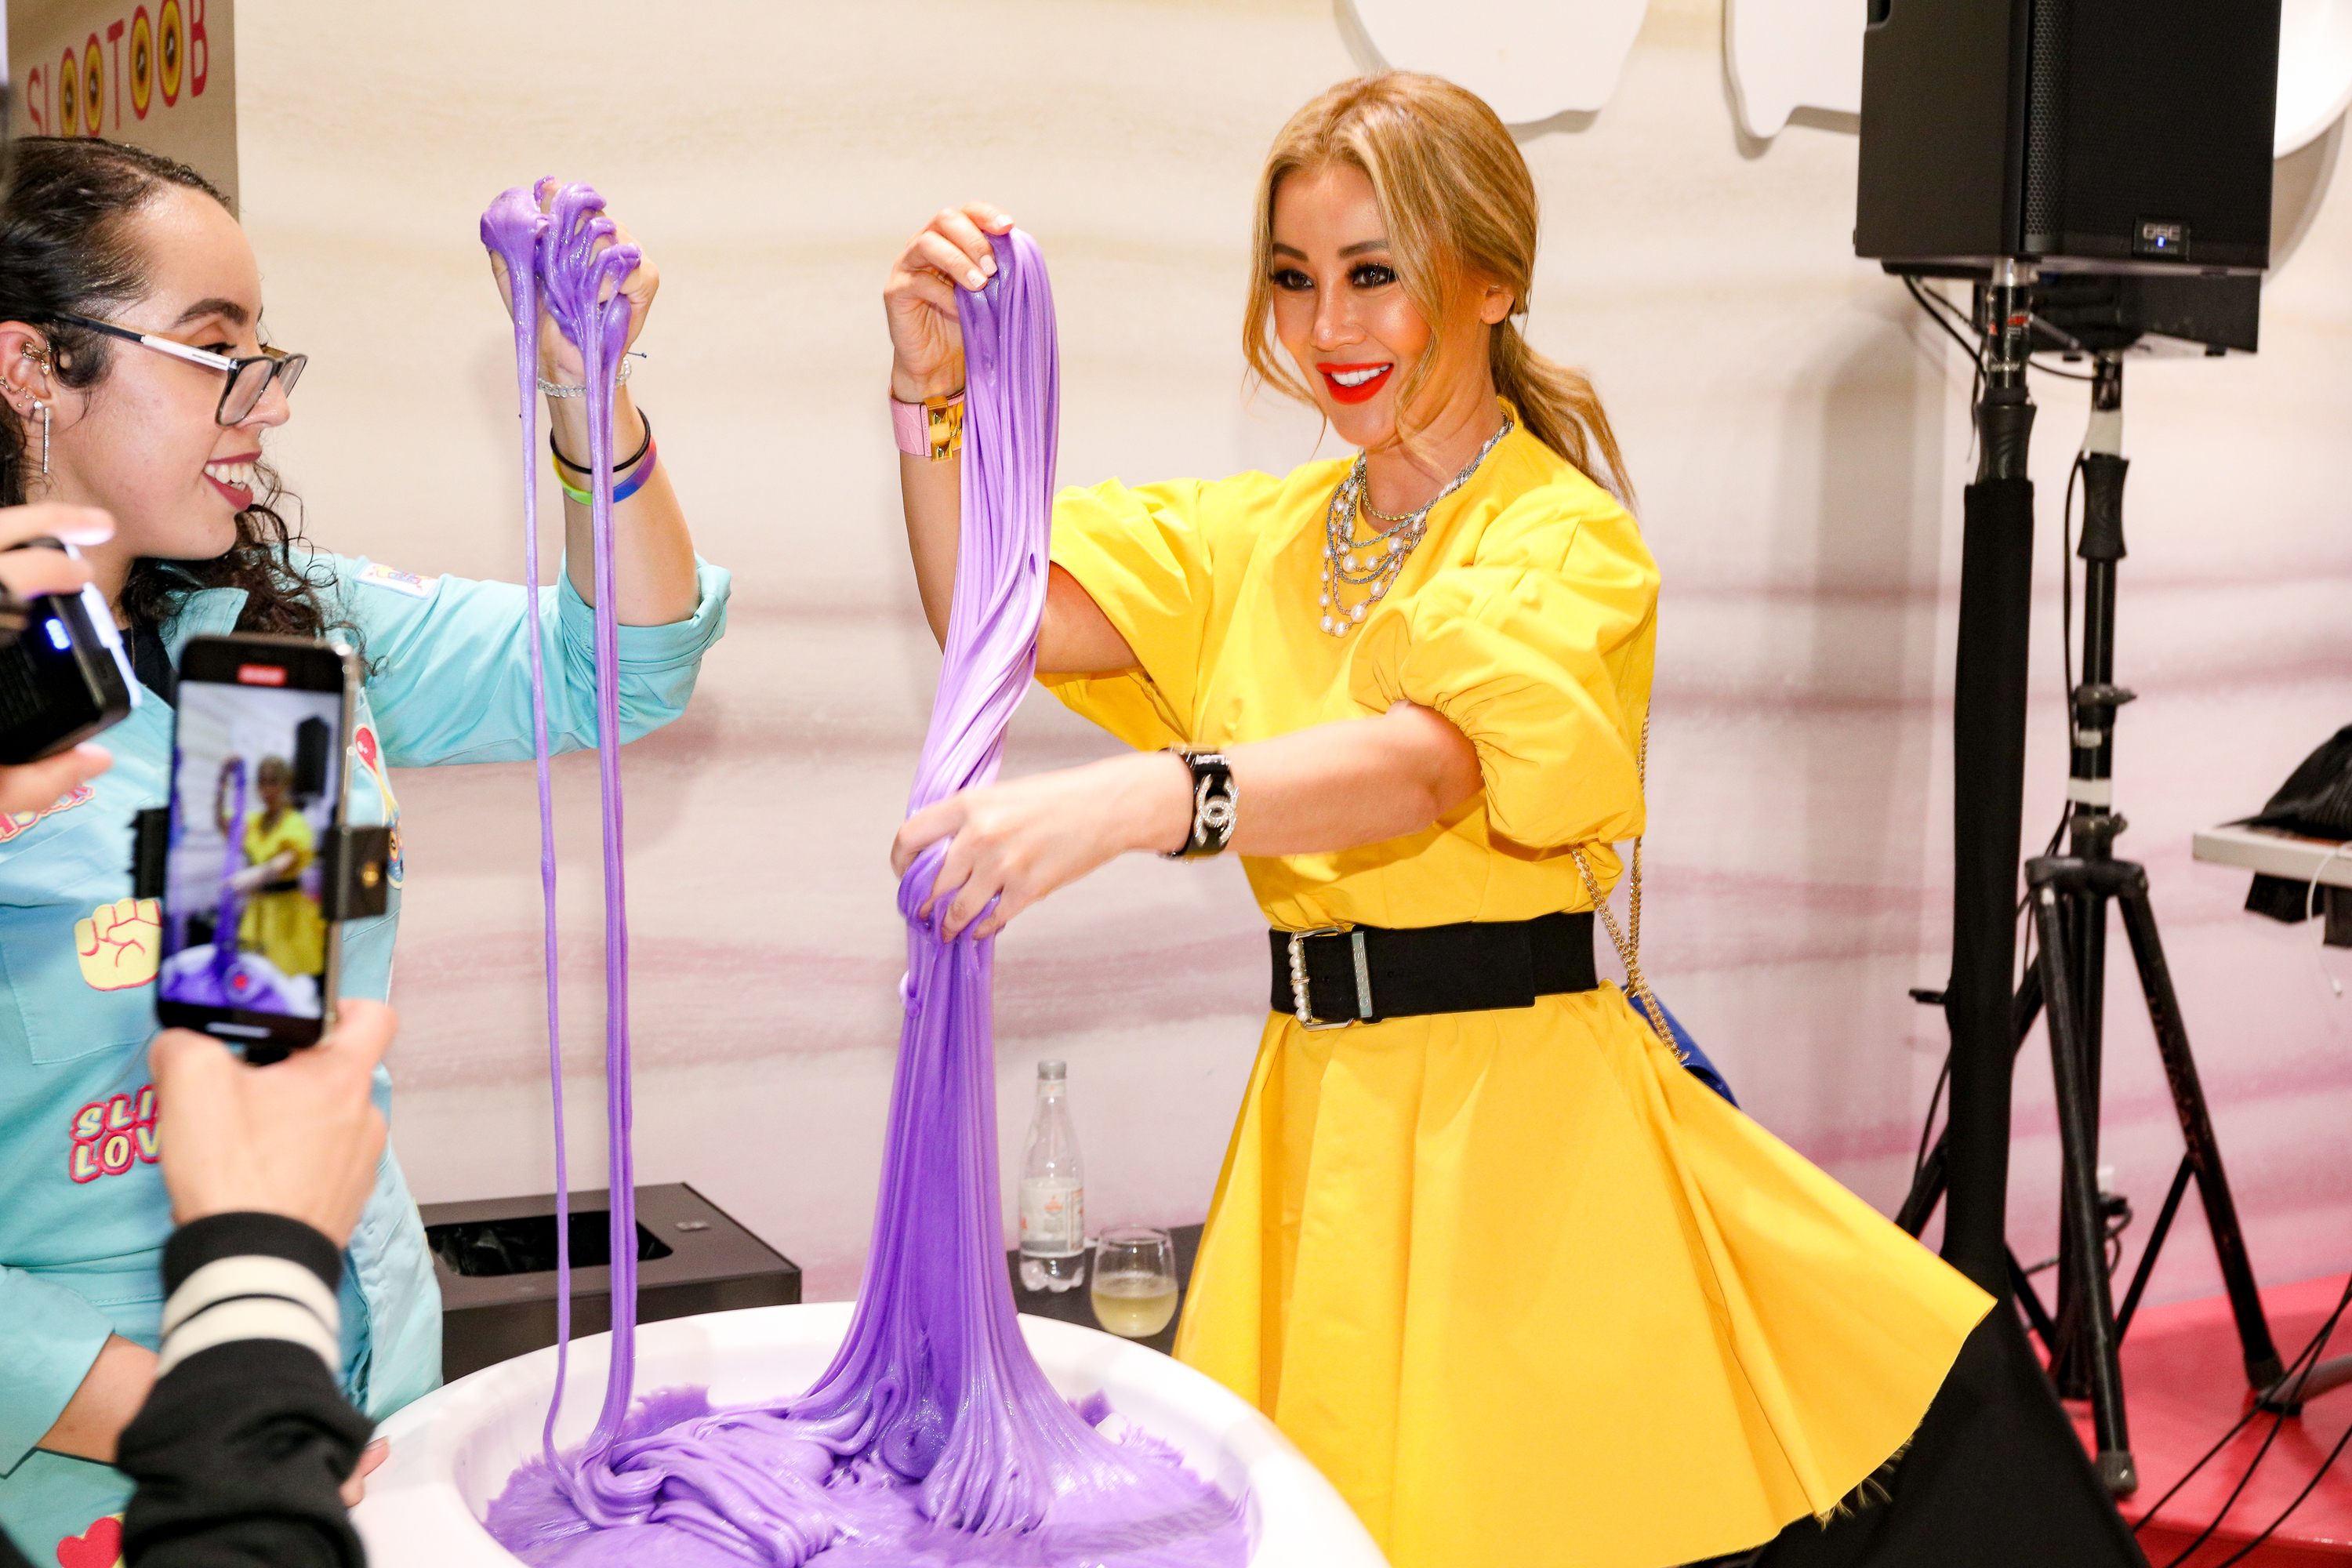 A slime experience comes to NYC